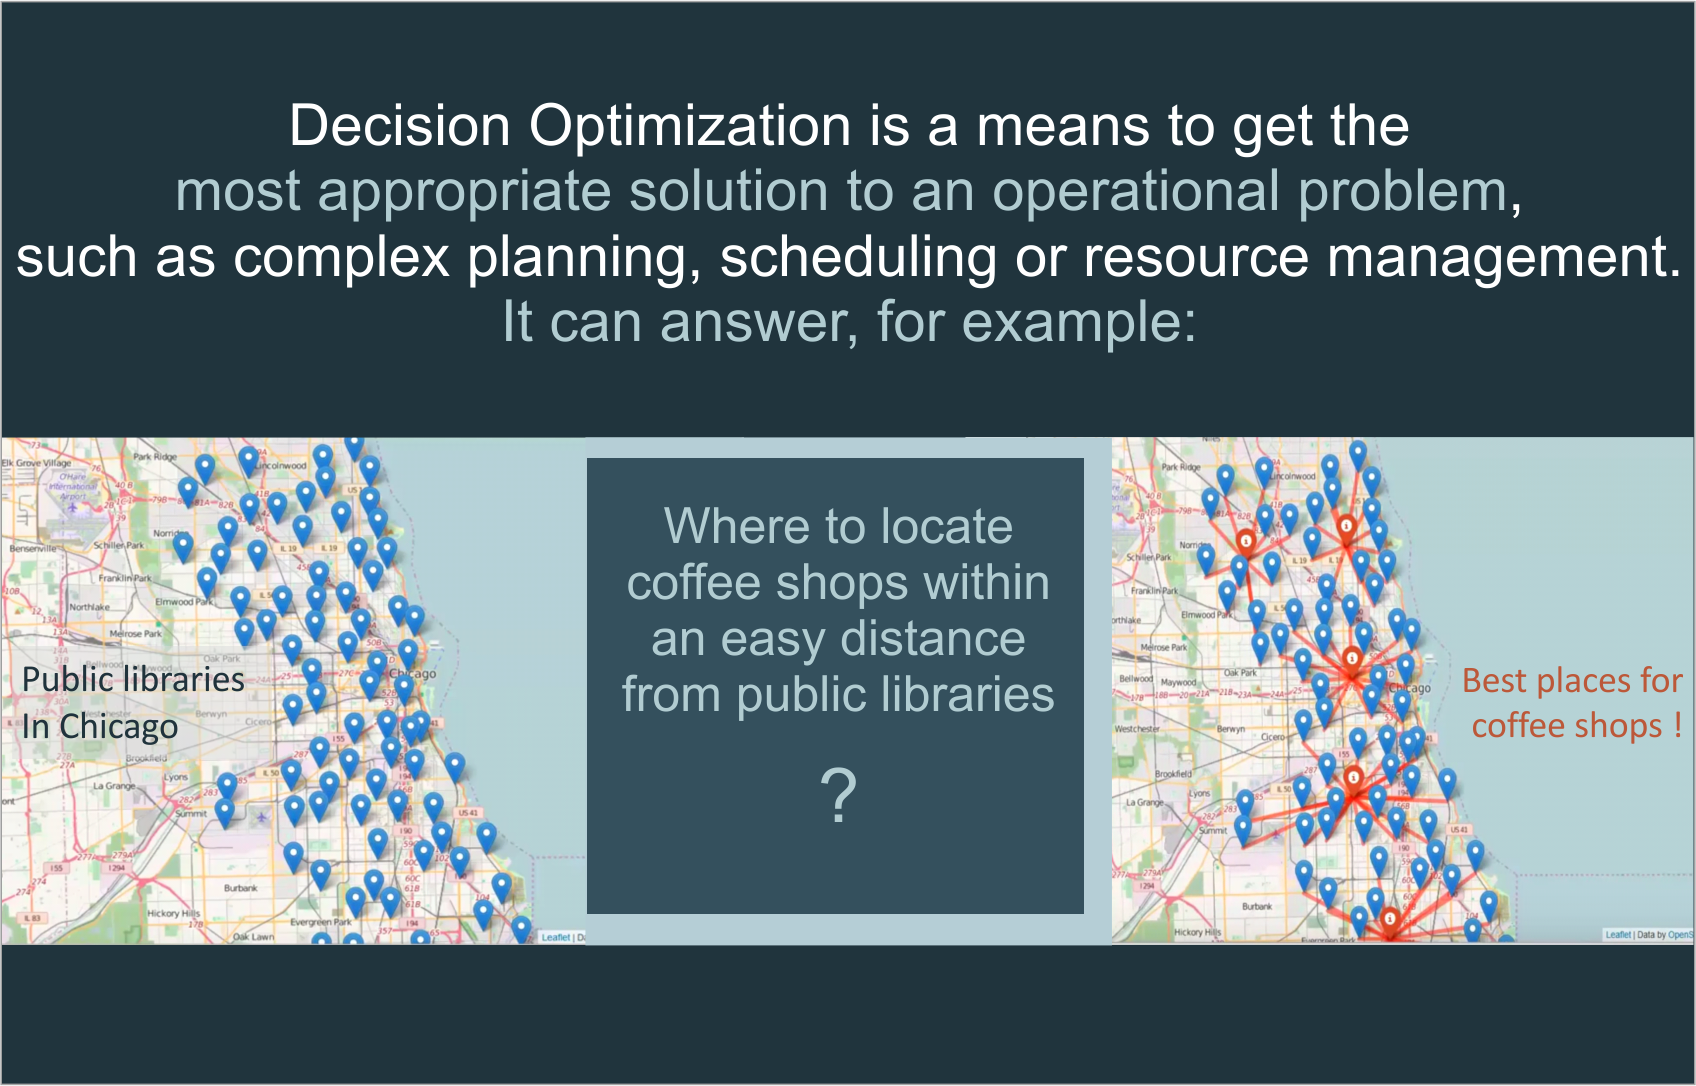 Decision Optimization helps business people make optimal decisions